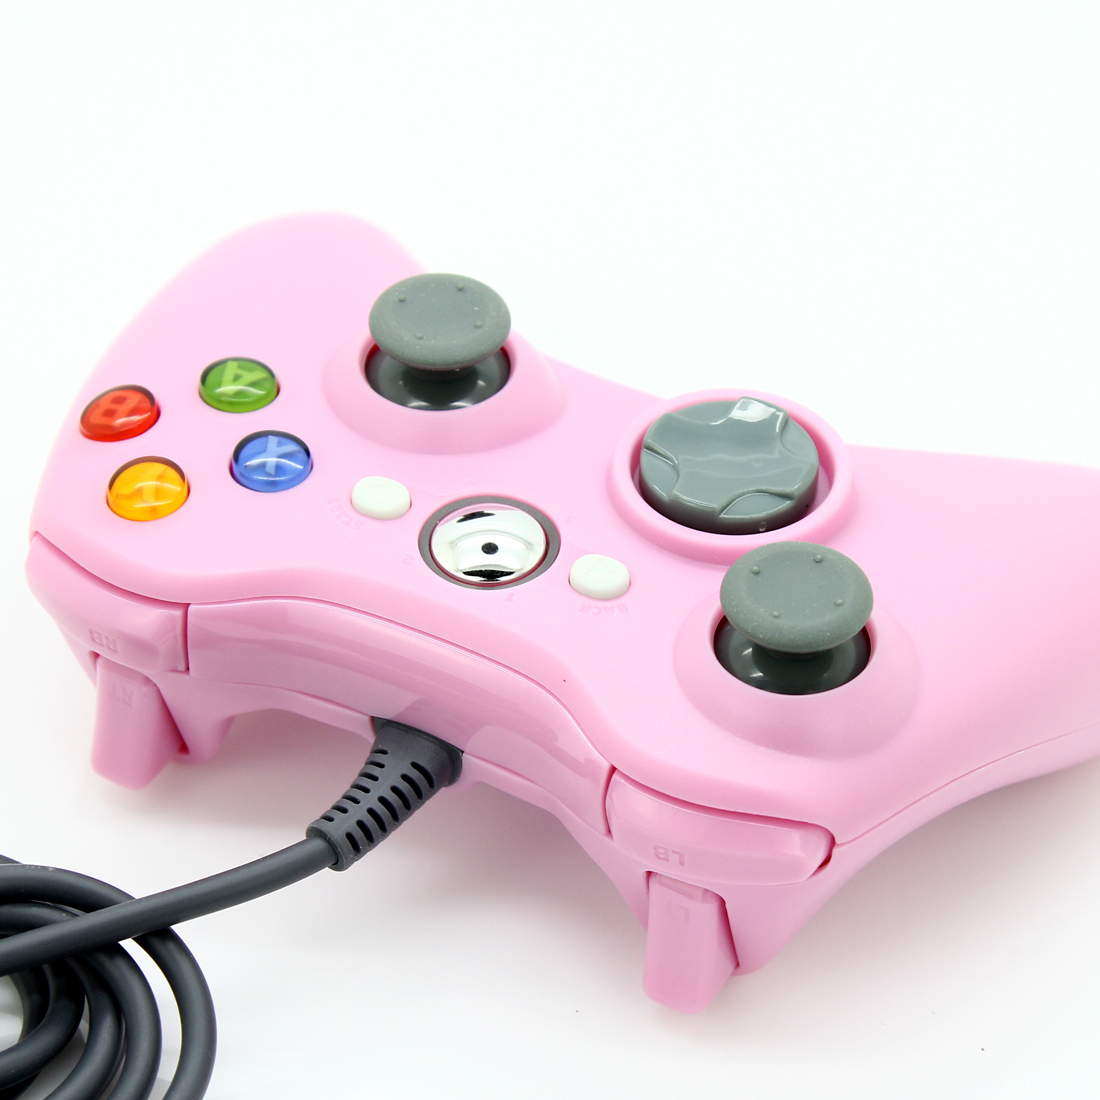 Hot USB Wired Joypad Gamepad Controller Pink For Microsoft For Xbox 360 PC XP Video Games Accessories(China (Mainland))